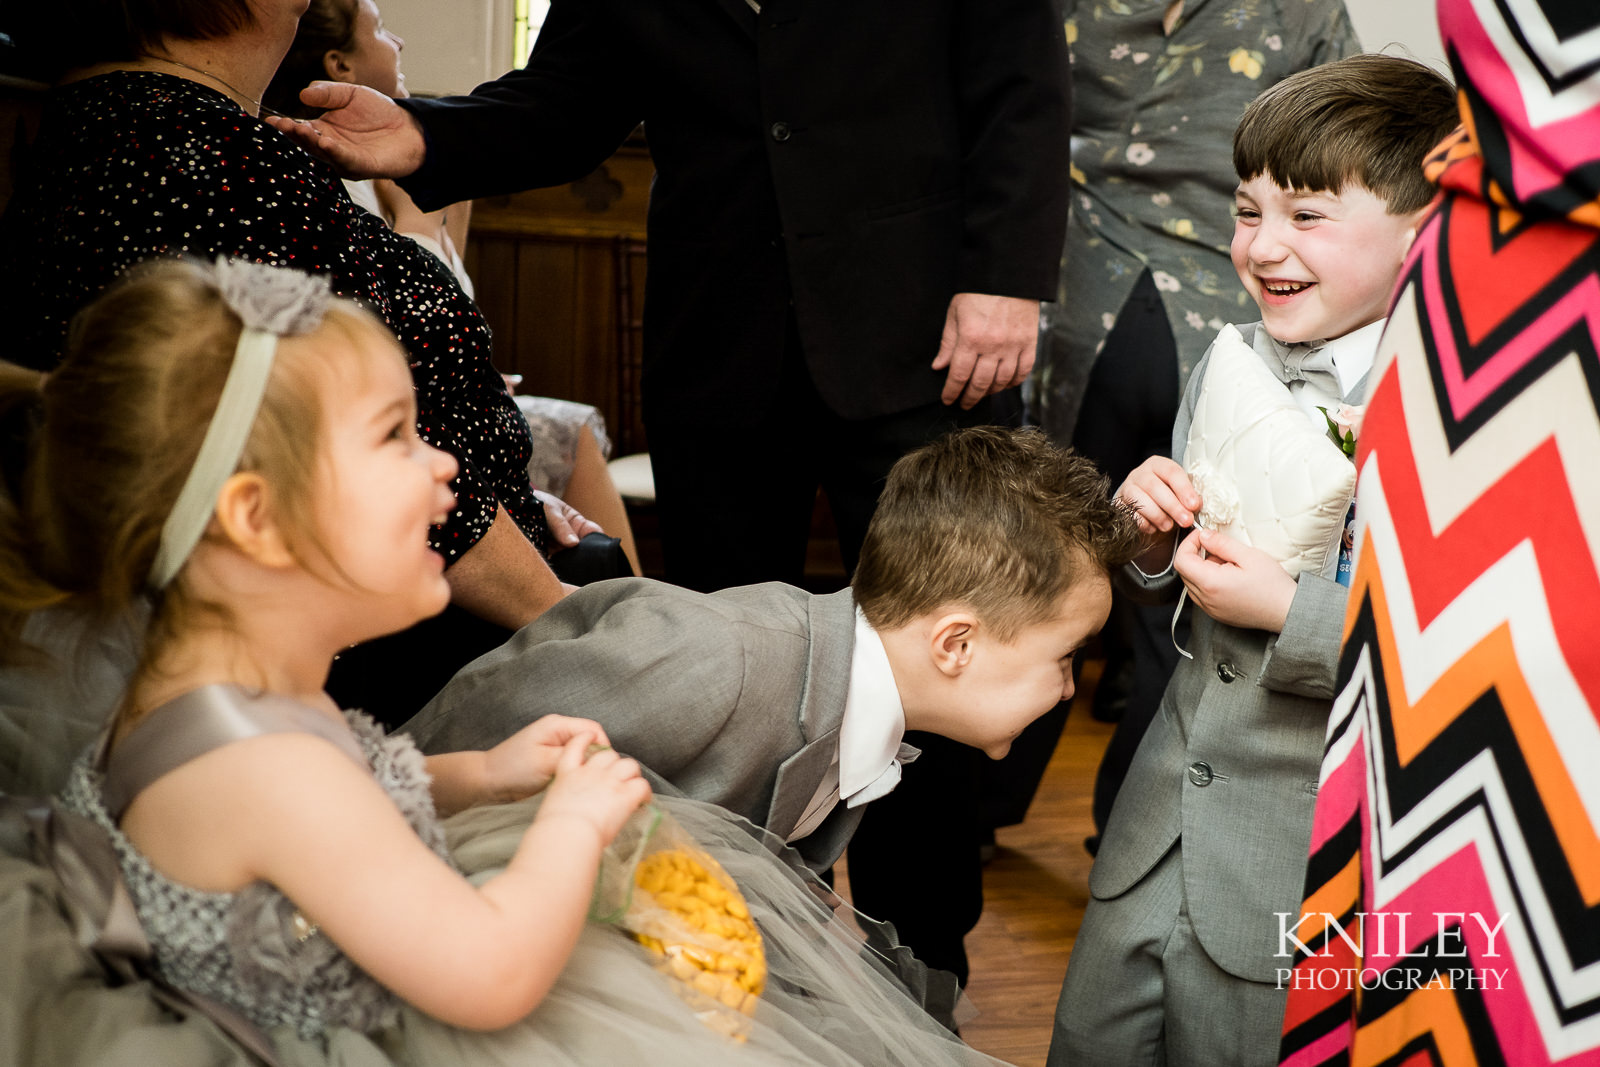 023 - Westminster Chapel - Rochester NY wedding photo - Kniley Photography.jpg